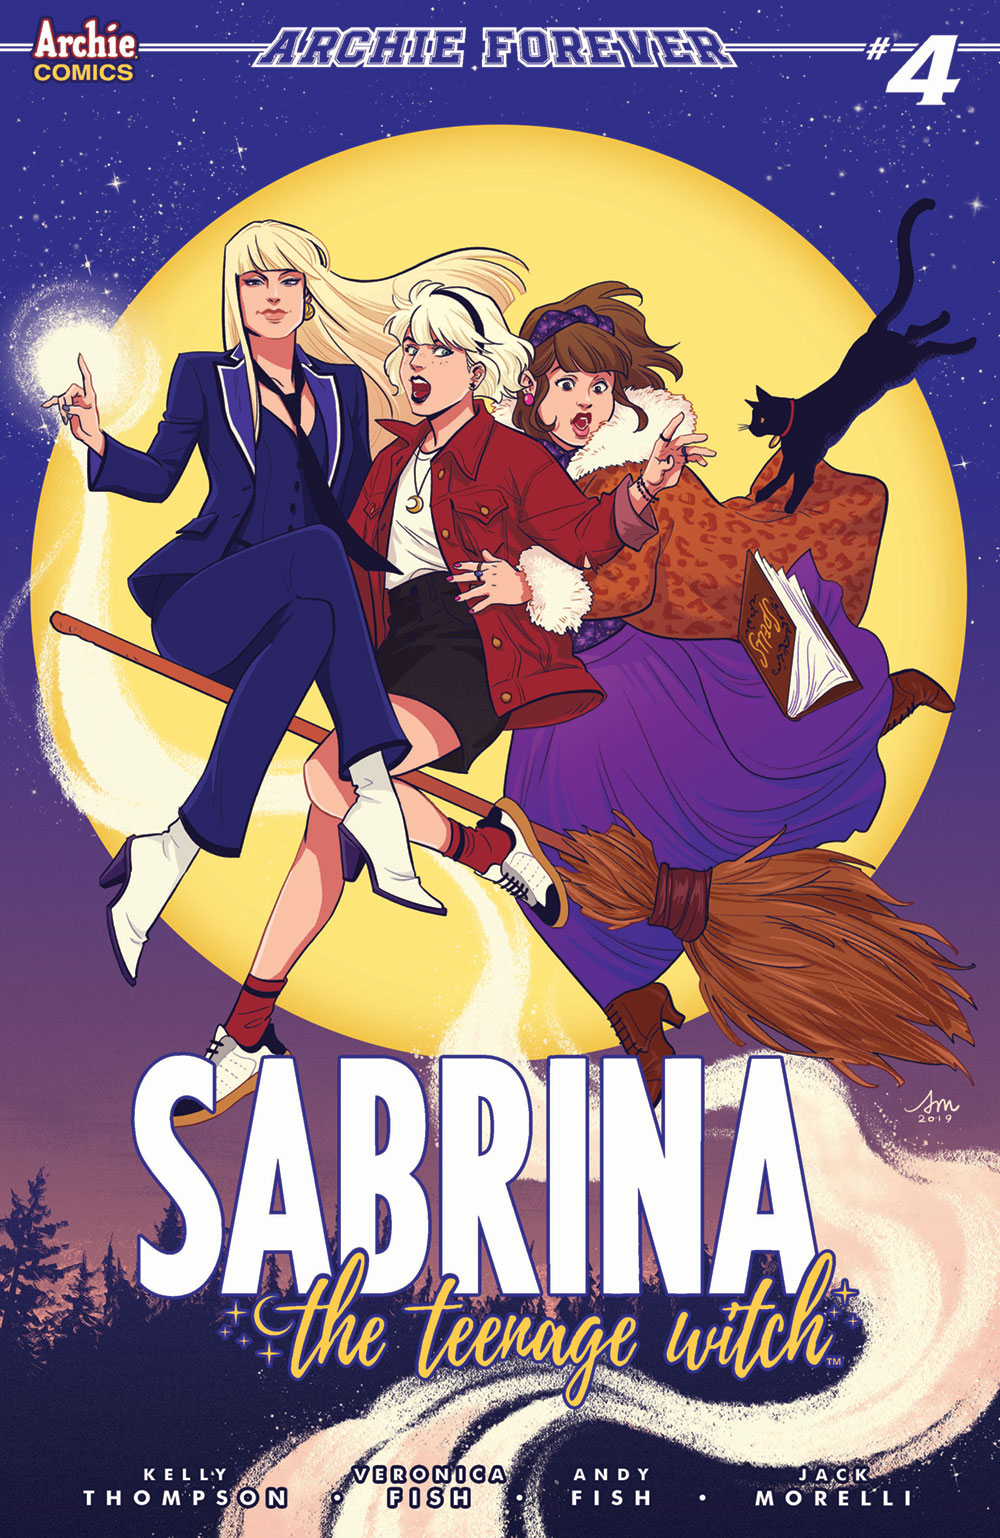 SABRINA THE TEENAGE WITCH #3: CVR C Mok